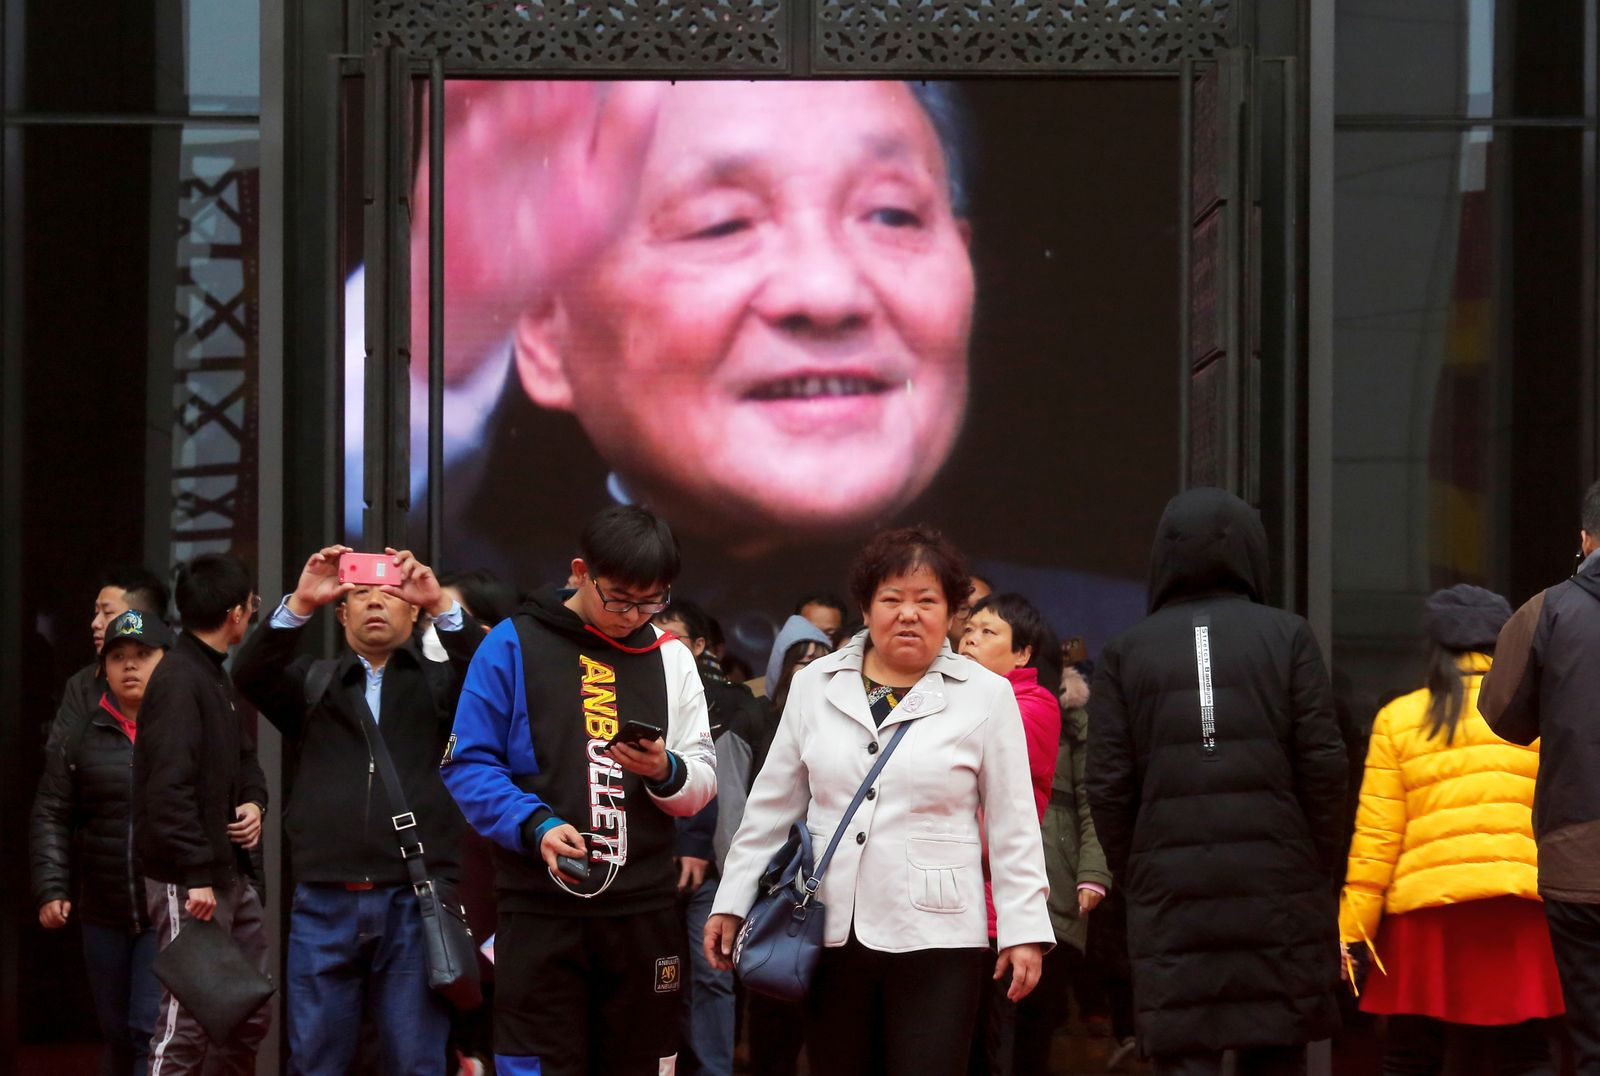 Exhibition marking 40th anniversary of China's reform and opening up